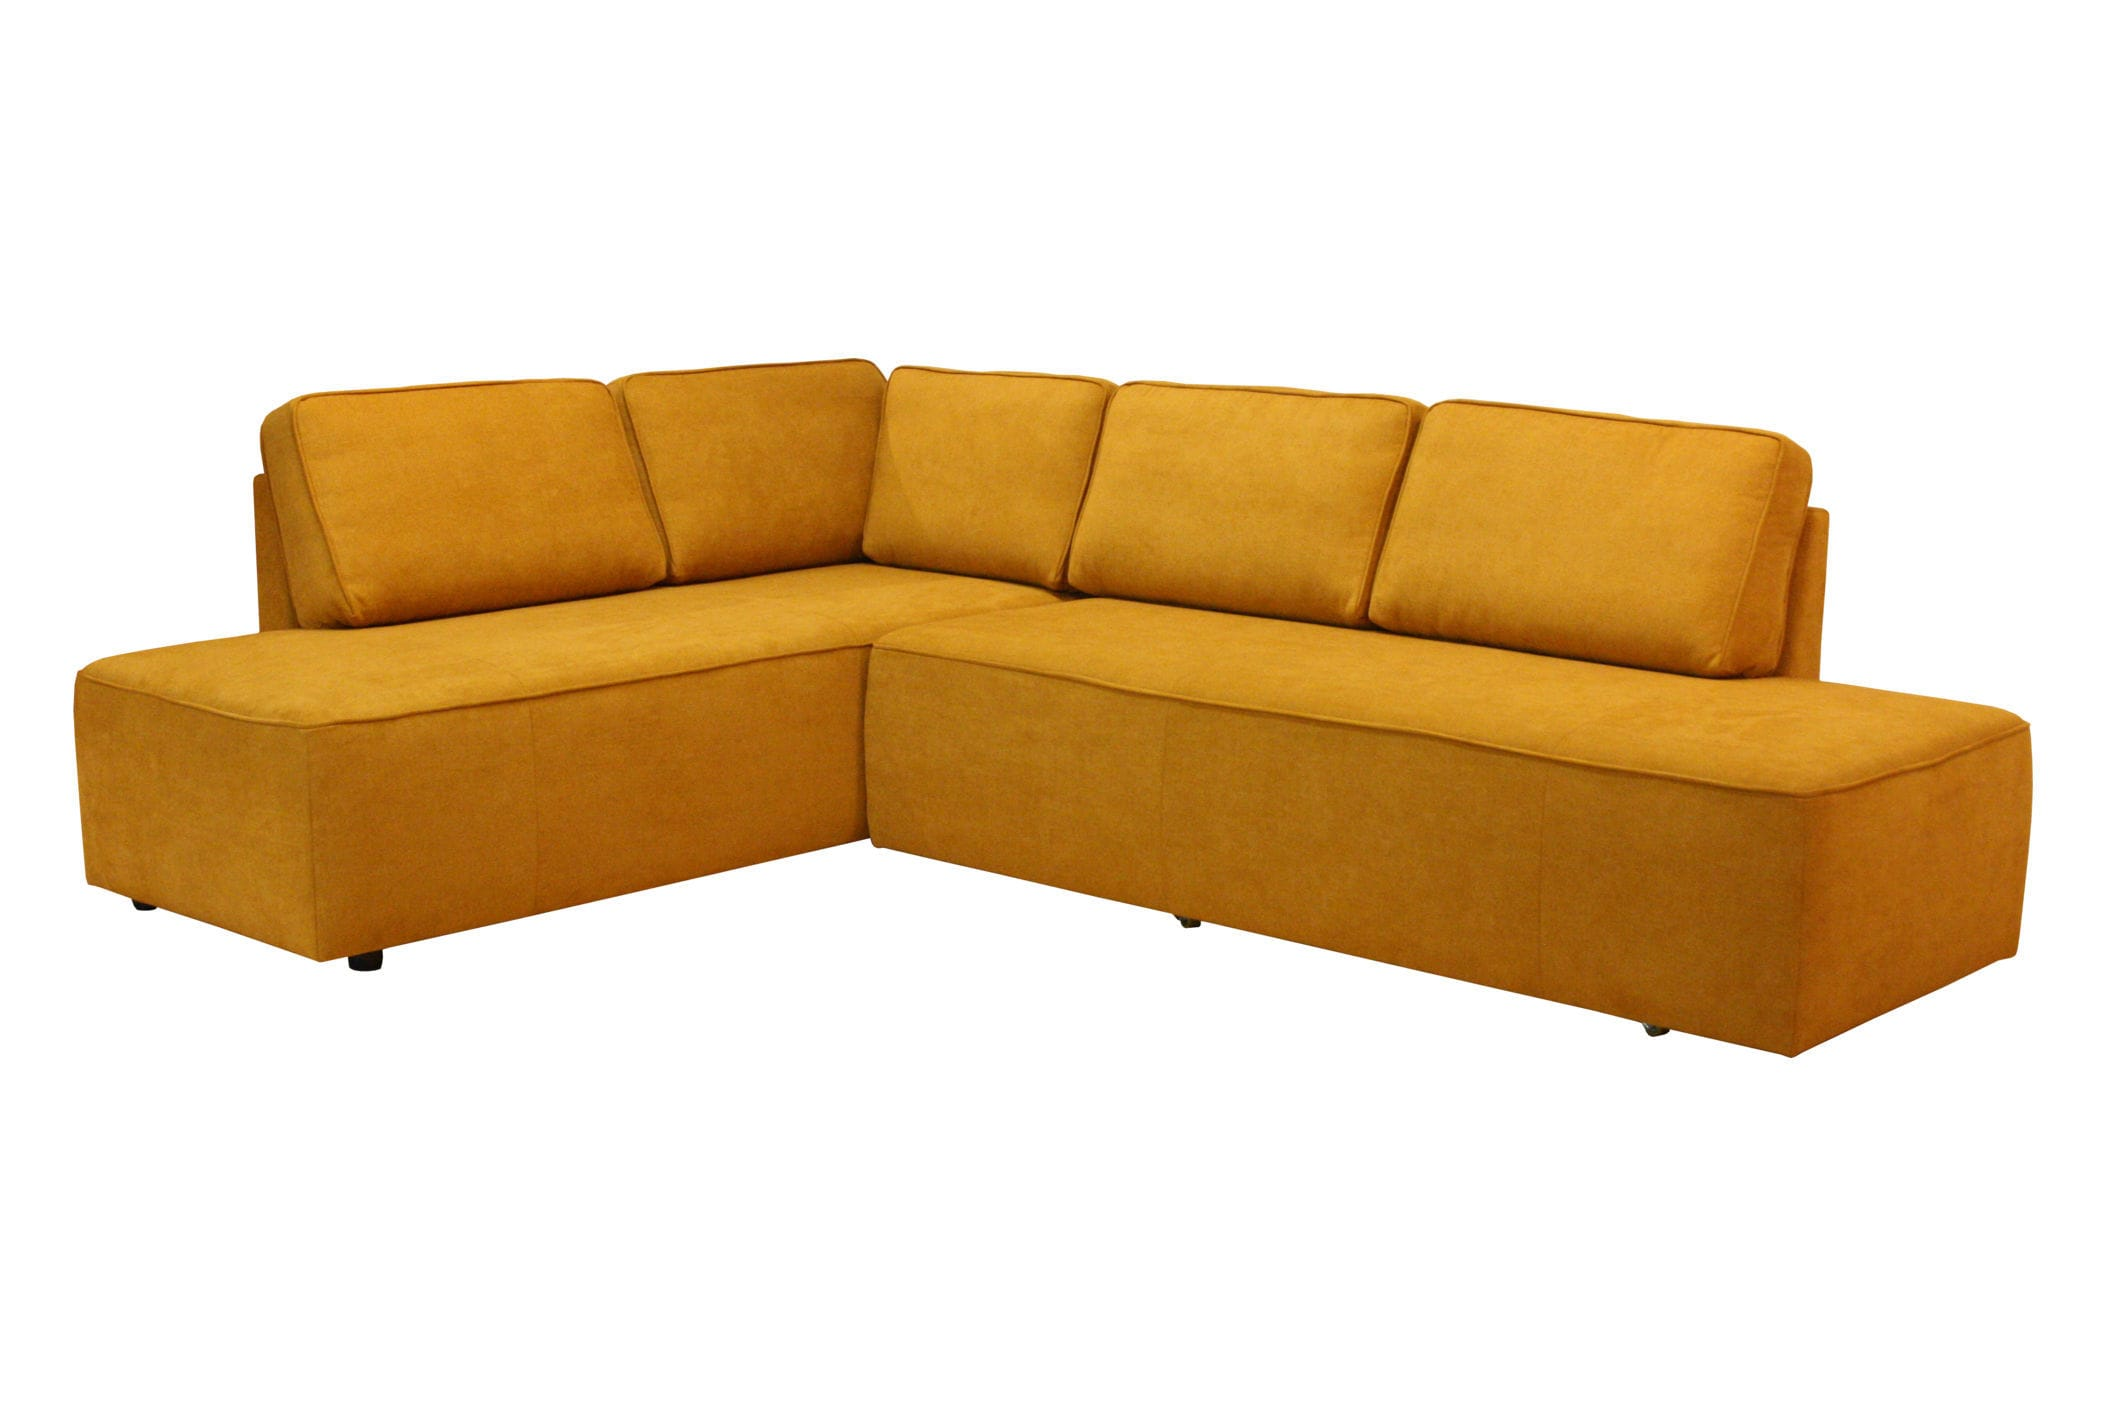 Sofa bed / corner / contemporary / leather - NEW YORK - Luonto furniture